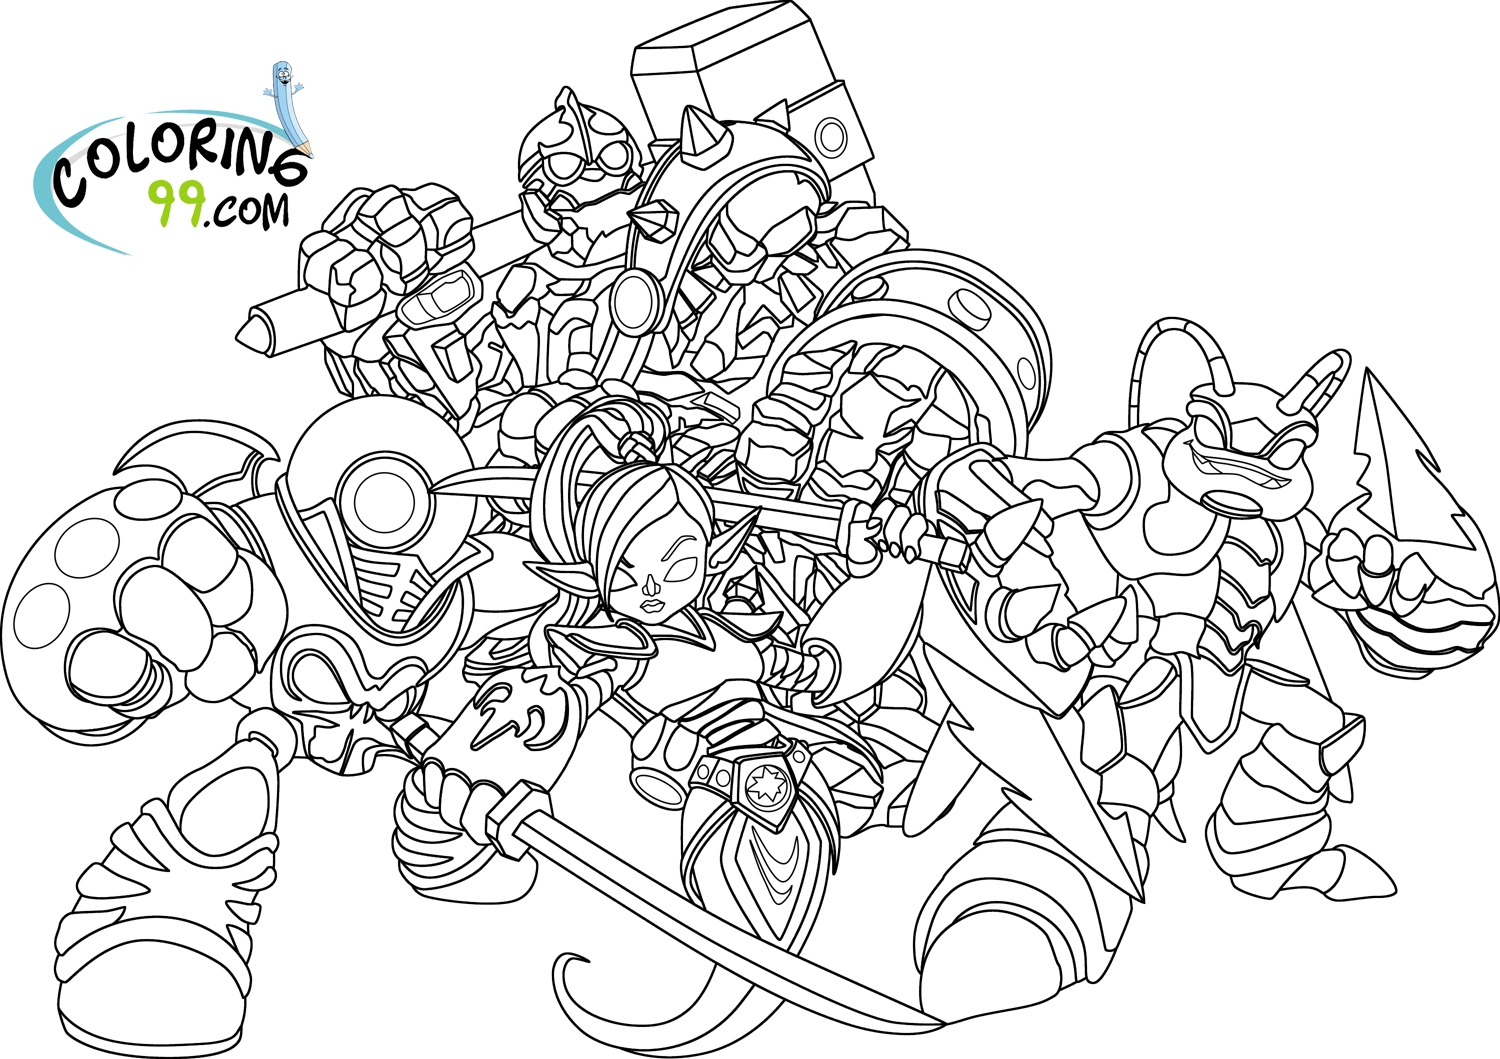 Printable Coloring Pages Skylanders 20 Skylanders Coloring Pages Images Free Coloring Pages